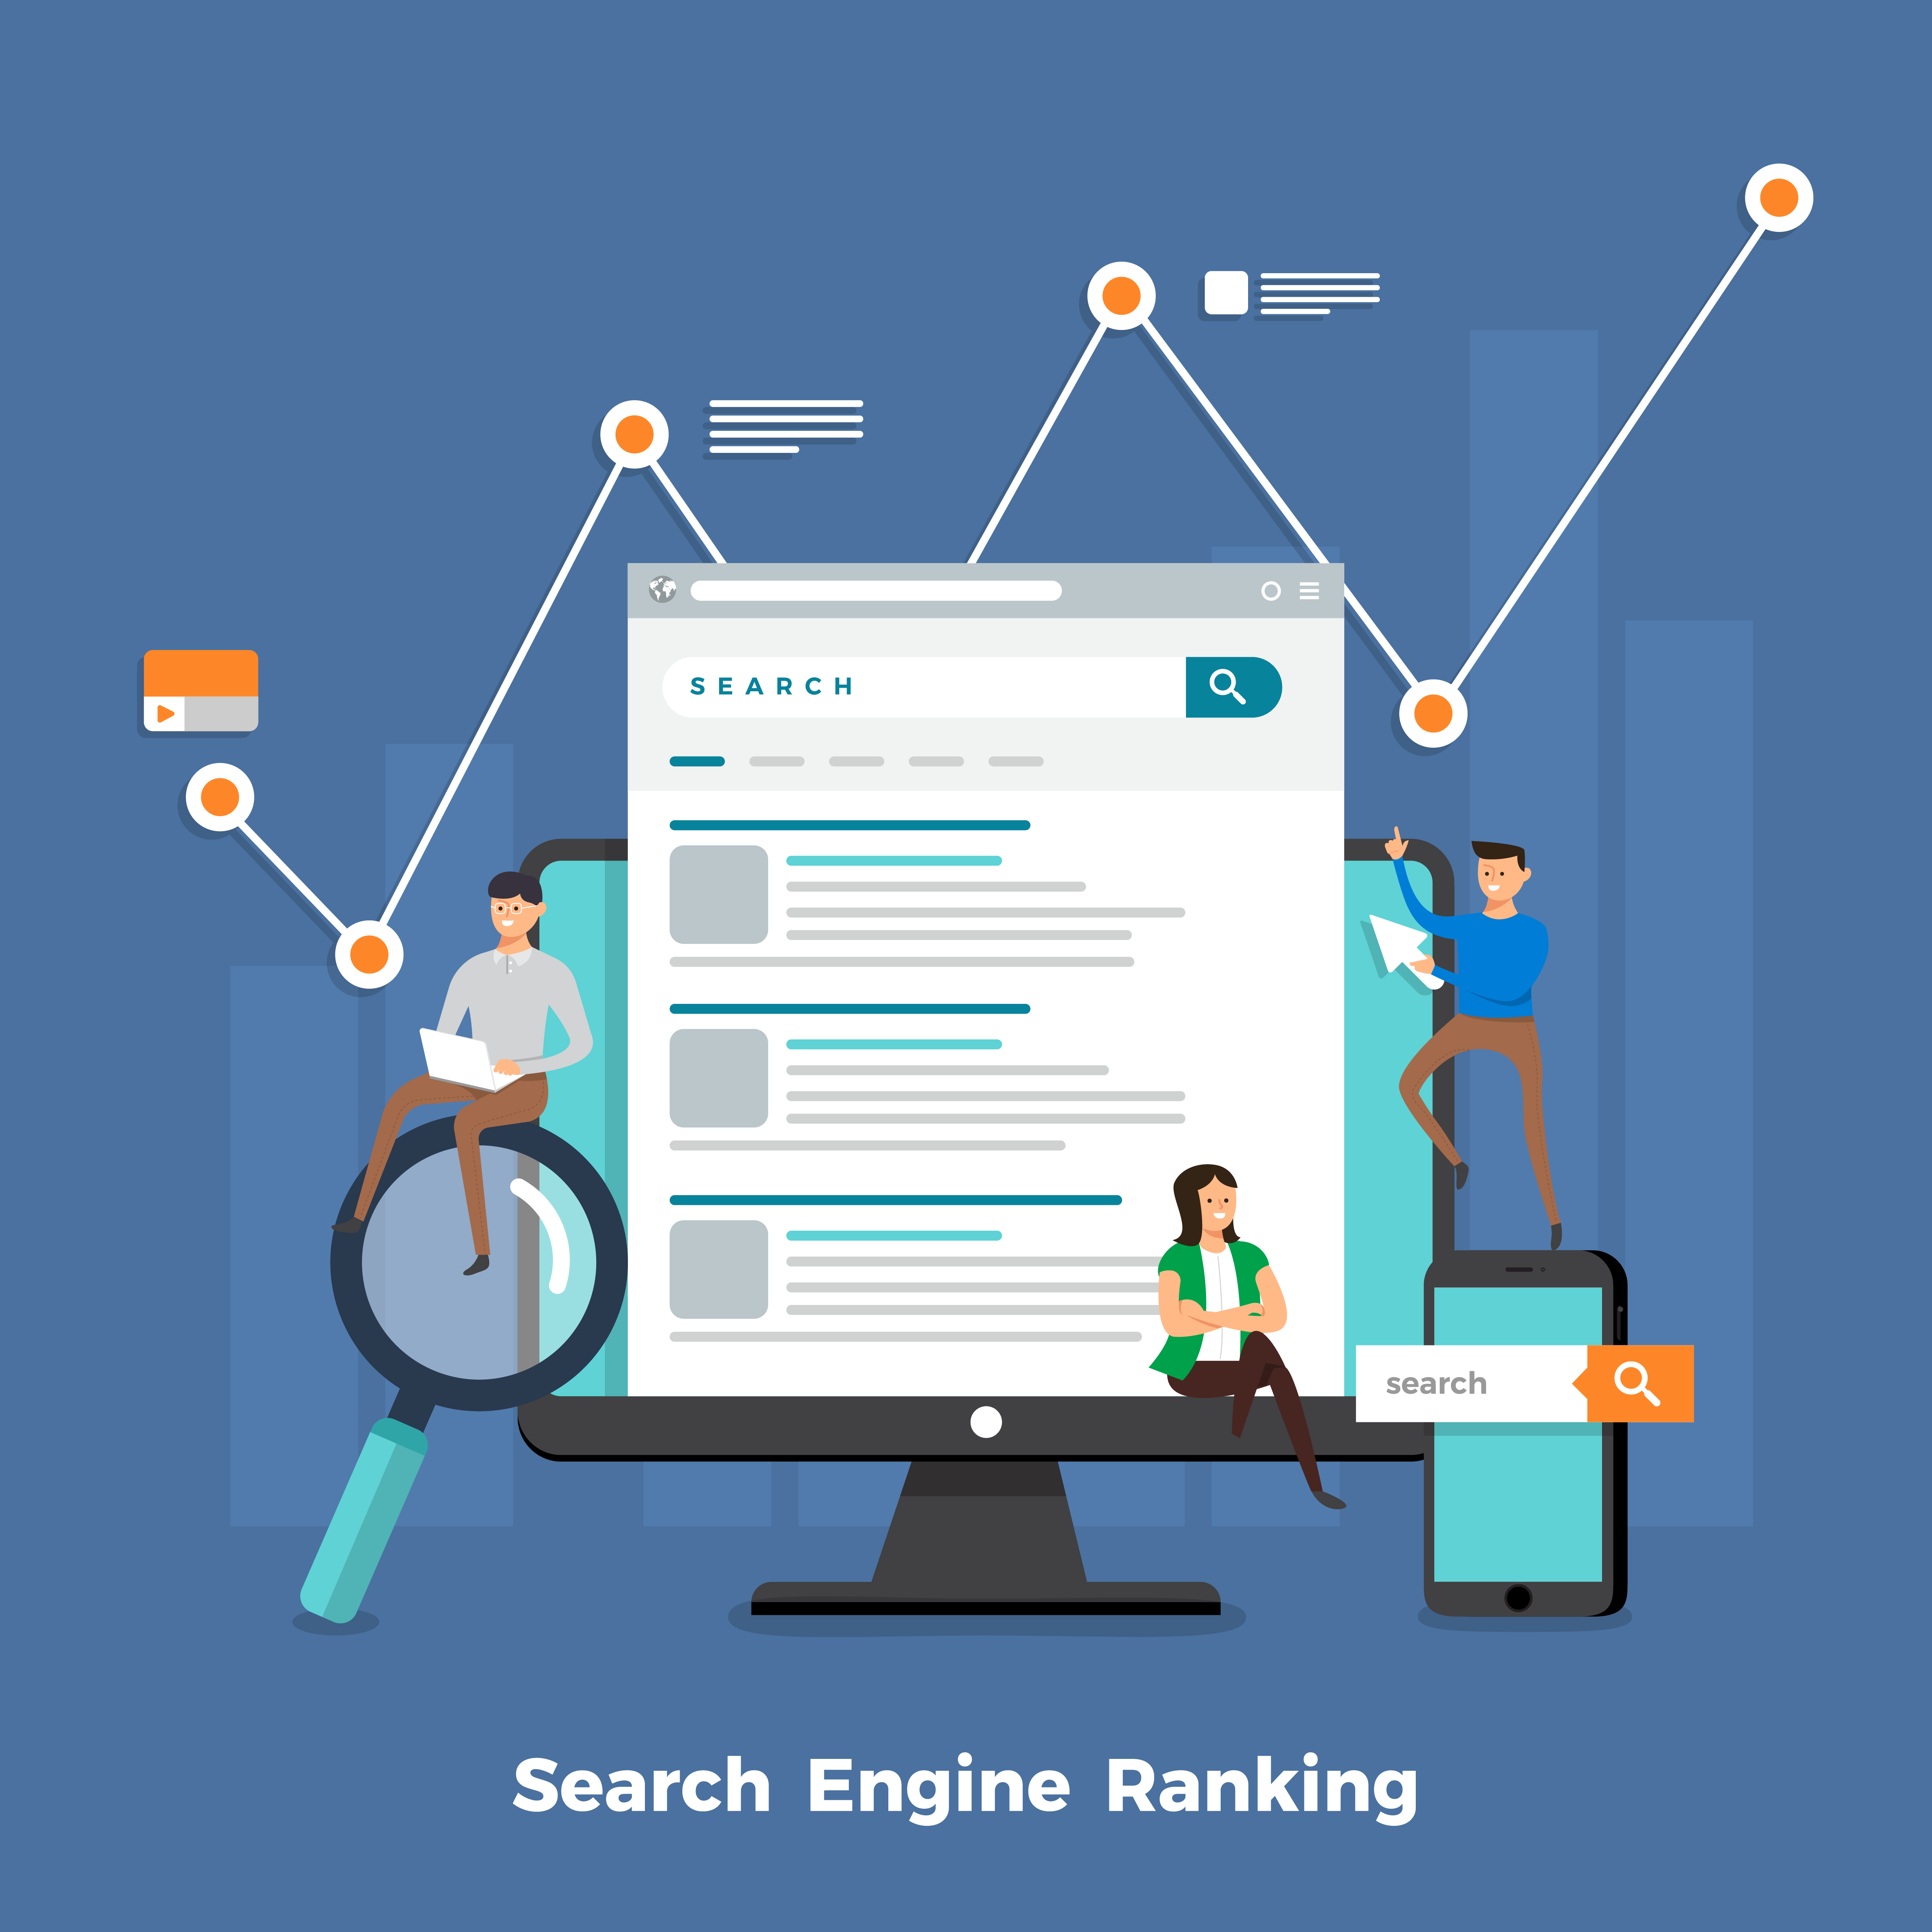 6 Easy SEO Tactics That'll Help Boost Your Rankings